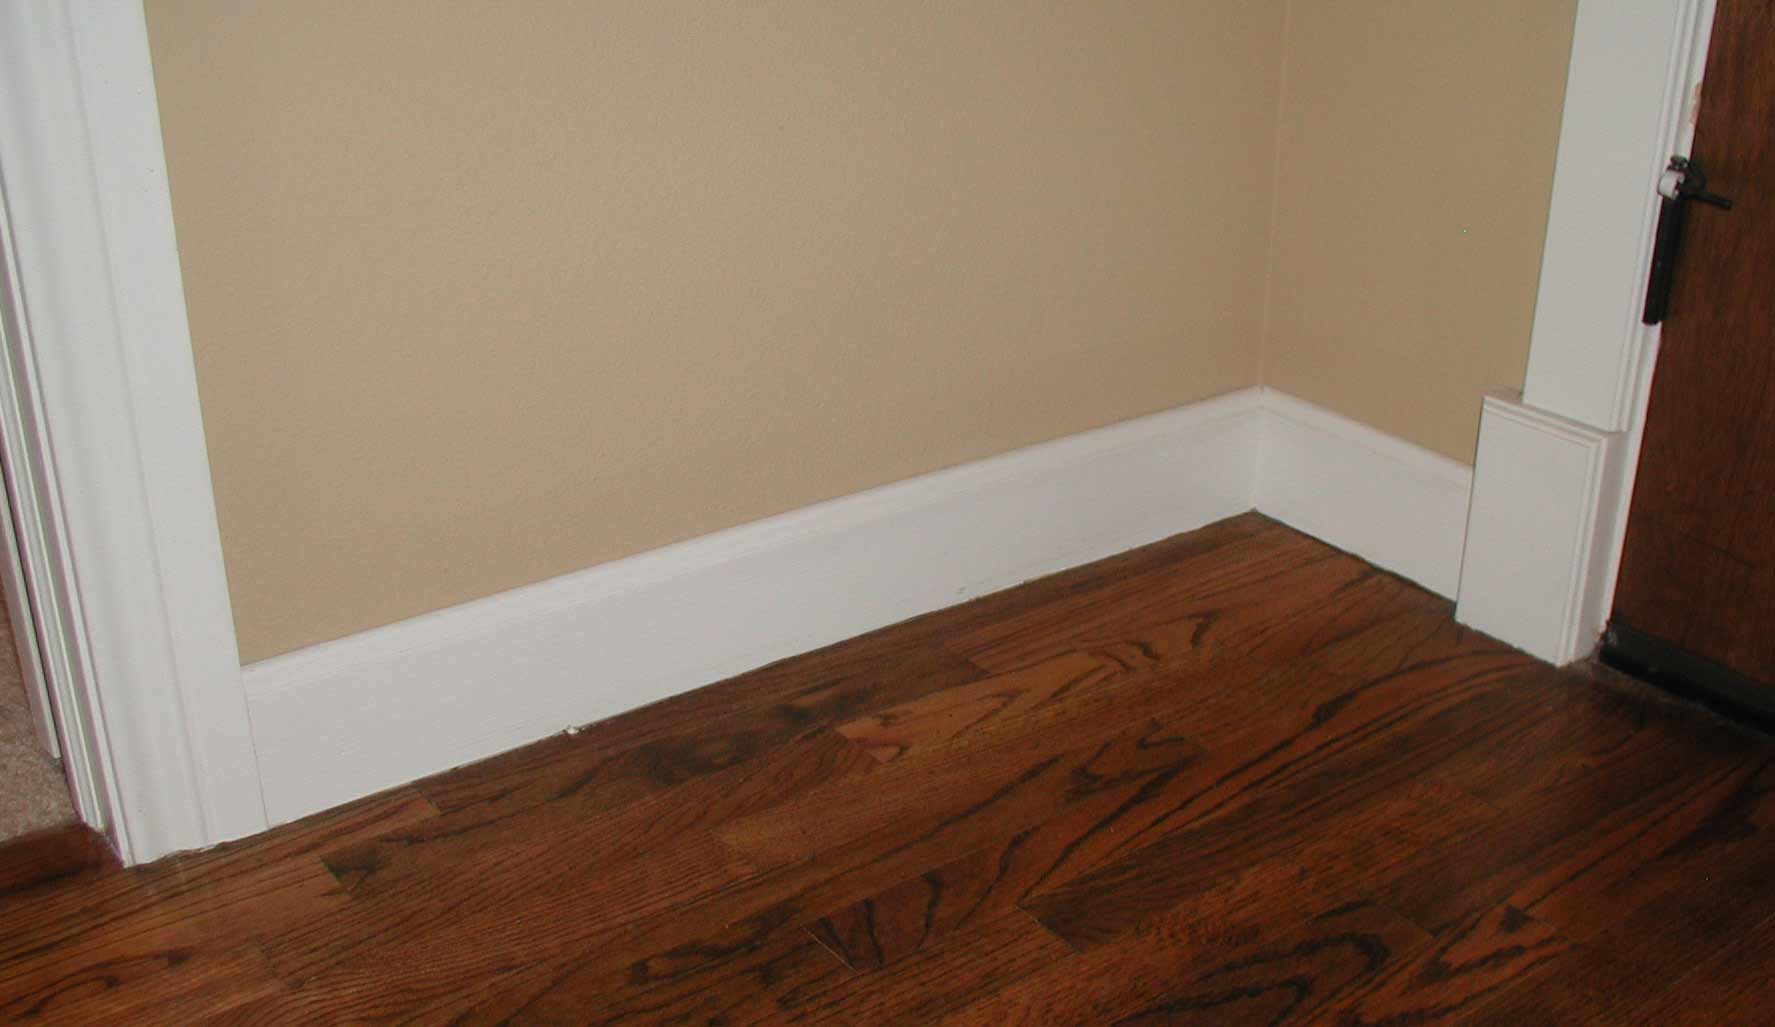 plastered corners baseboard rounded molding